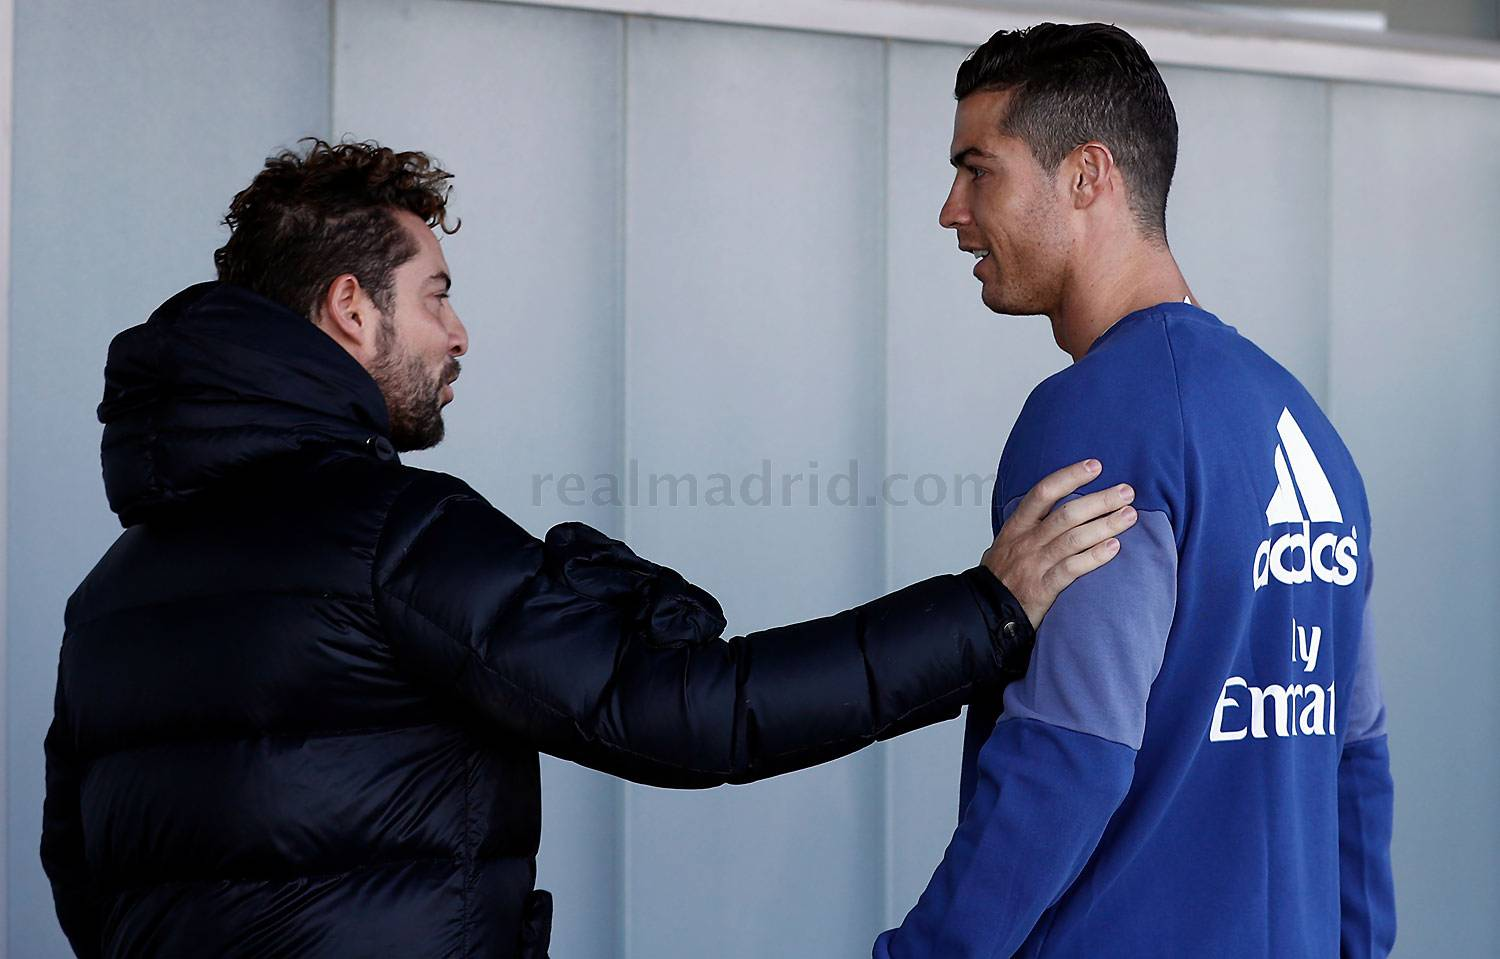 Cristiano y Bisbal